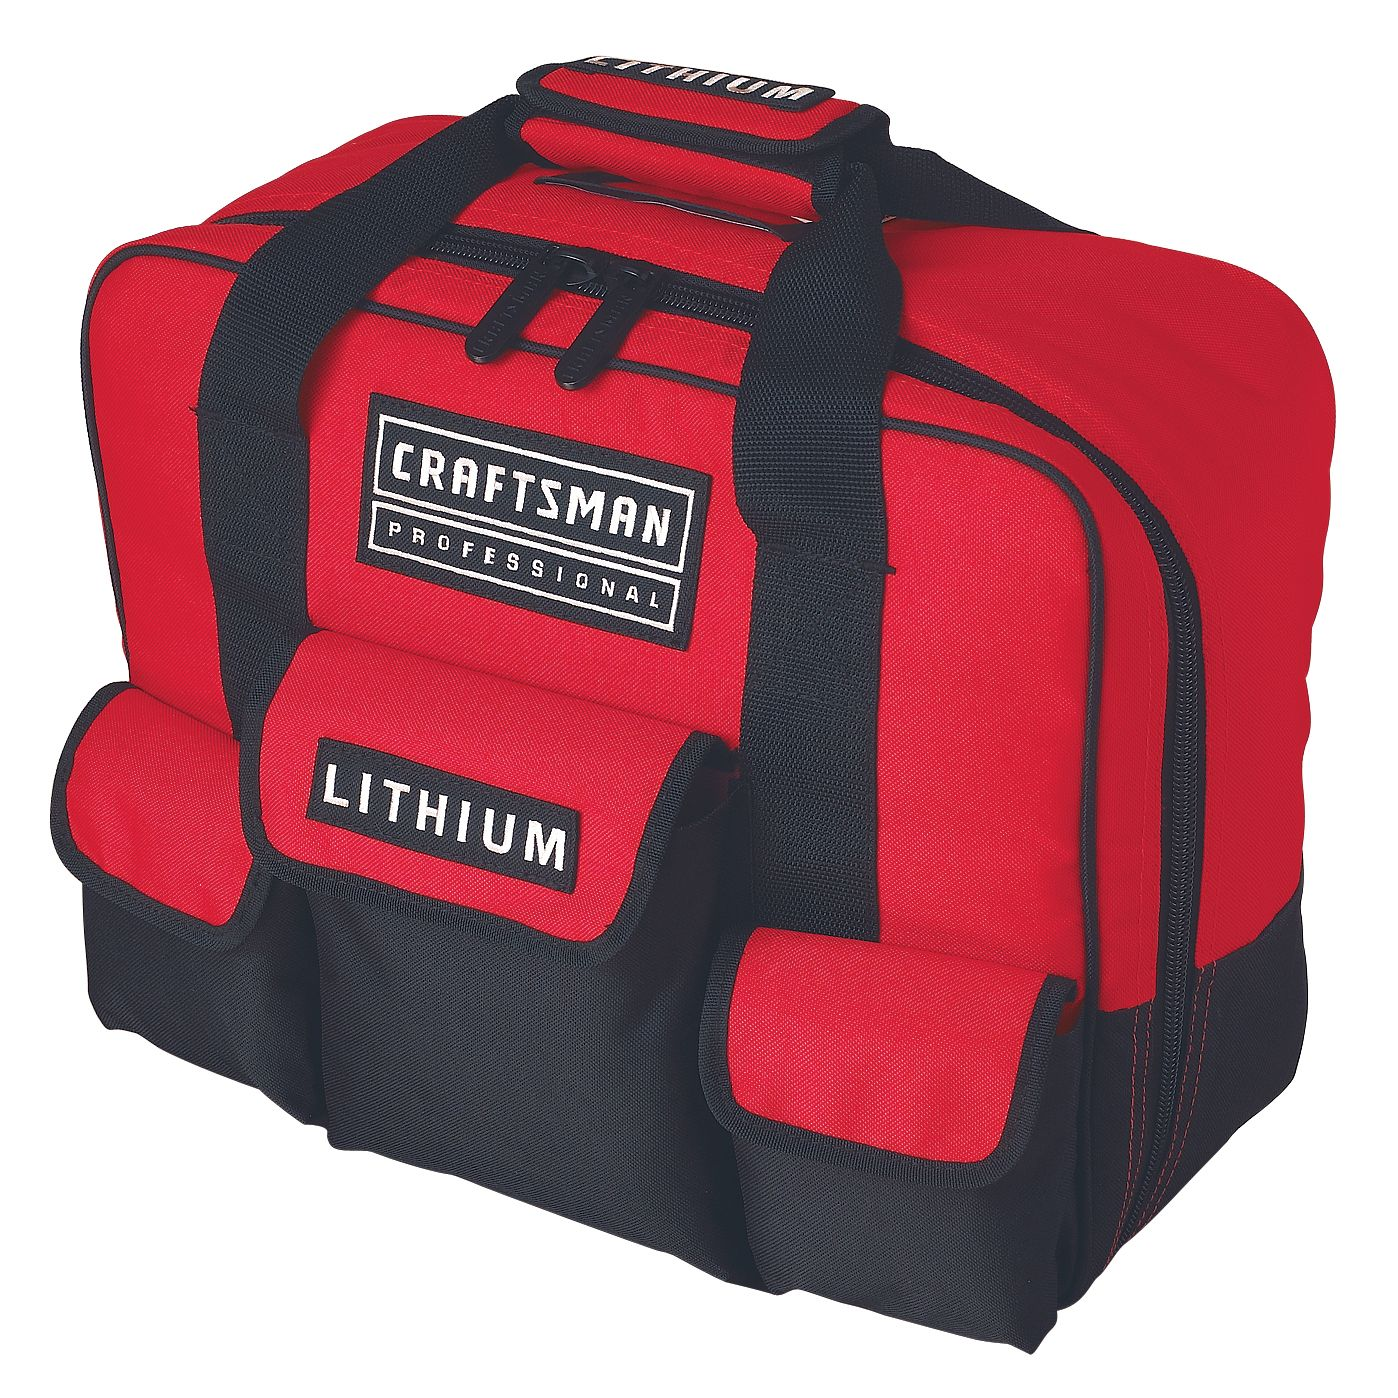 "Craftsman Professional 28169 20-volt Lithium-Ion Cordless 1/2"" Drill/Driver with Contractor Utility Bag"